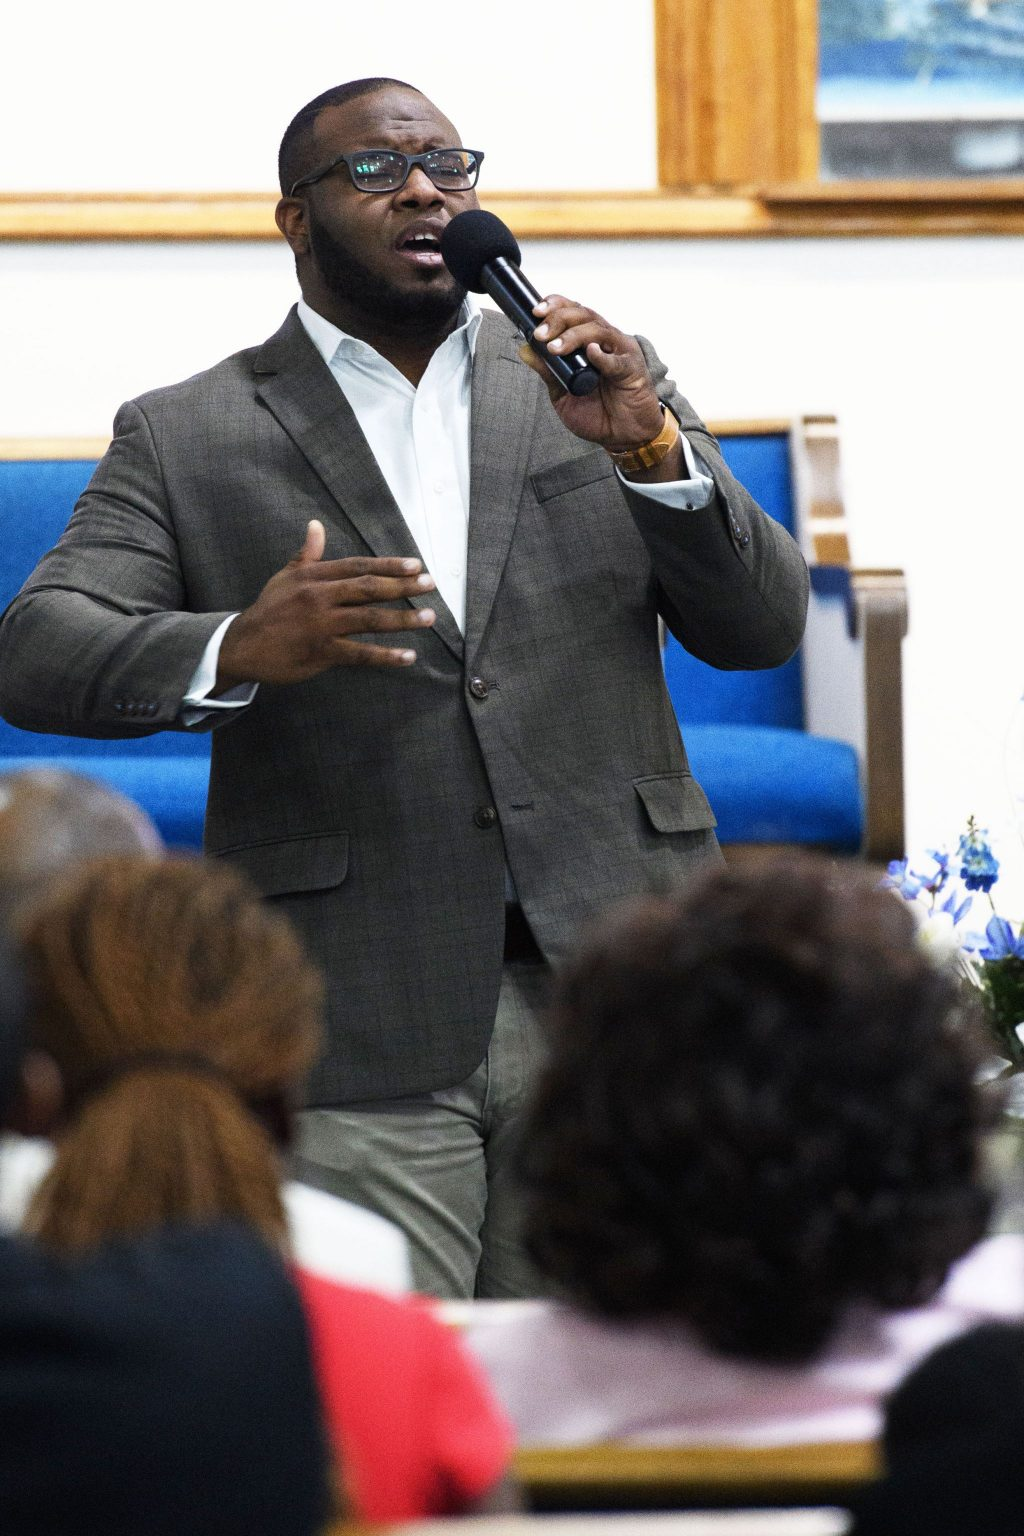 Botham Shem Jean sings at the Dallas West Church of Christ in fall 2017.